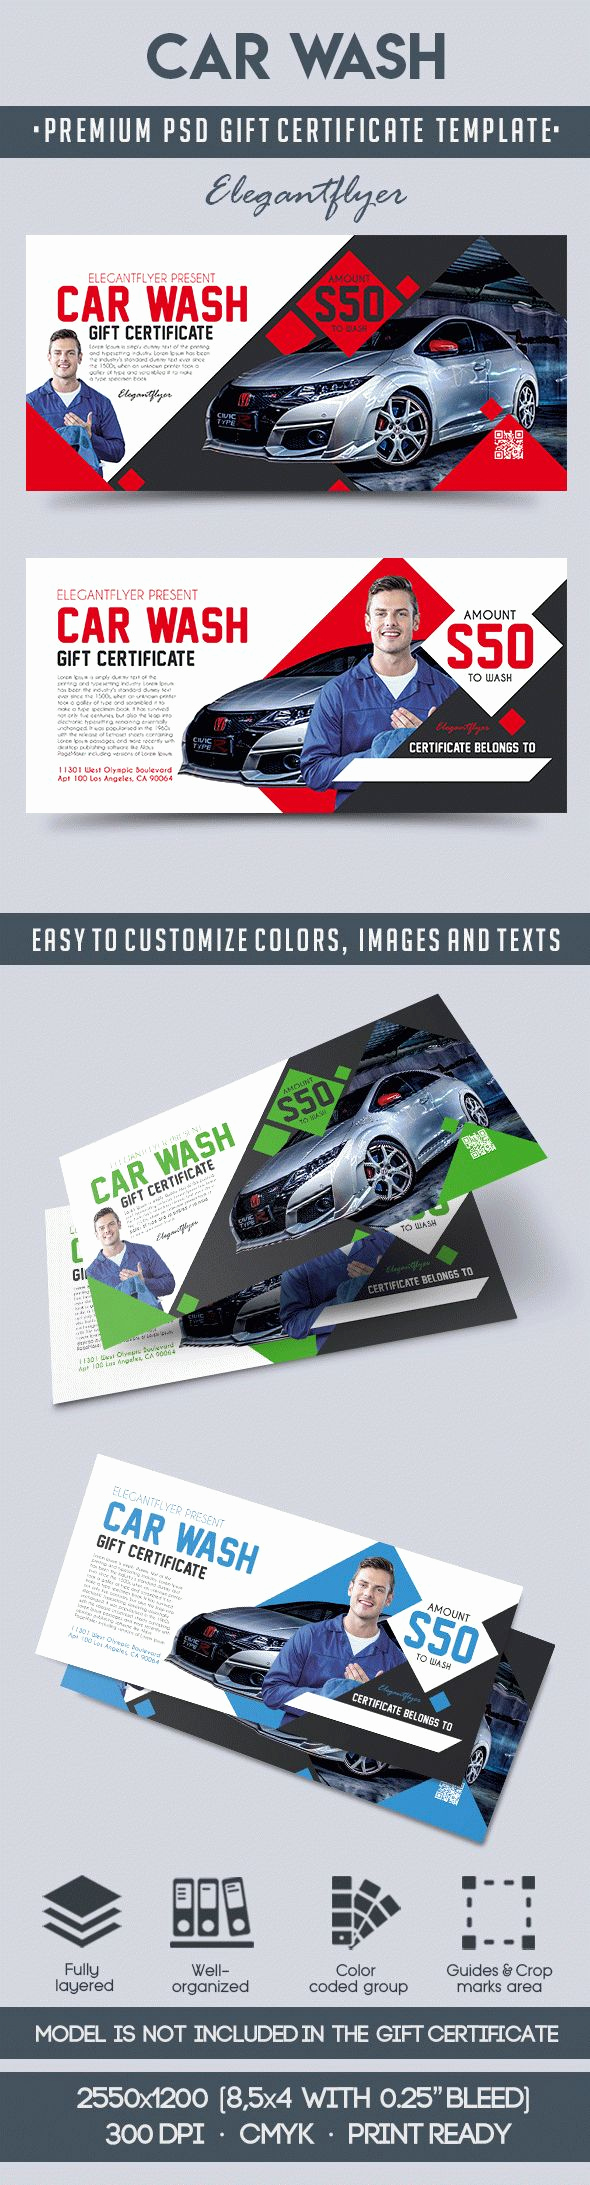 Car Wash Gift Certificate Template Unique Car Wash – Premium Gift Certificate Psd Template – by